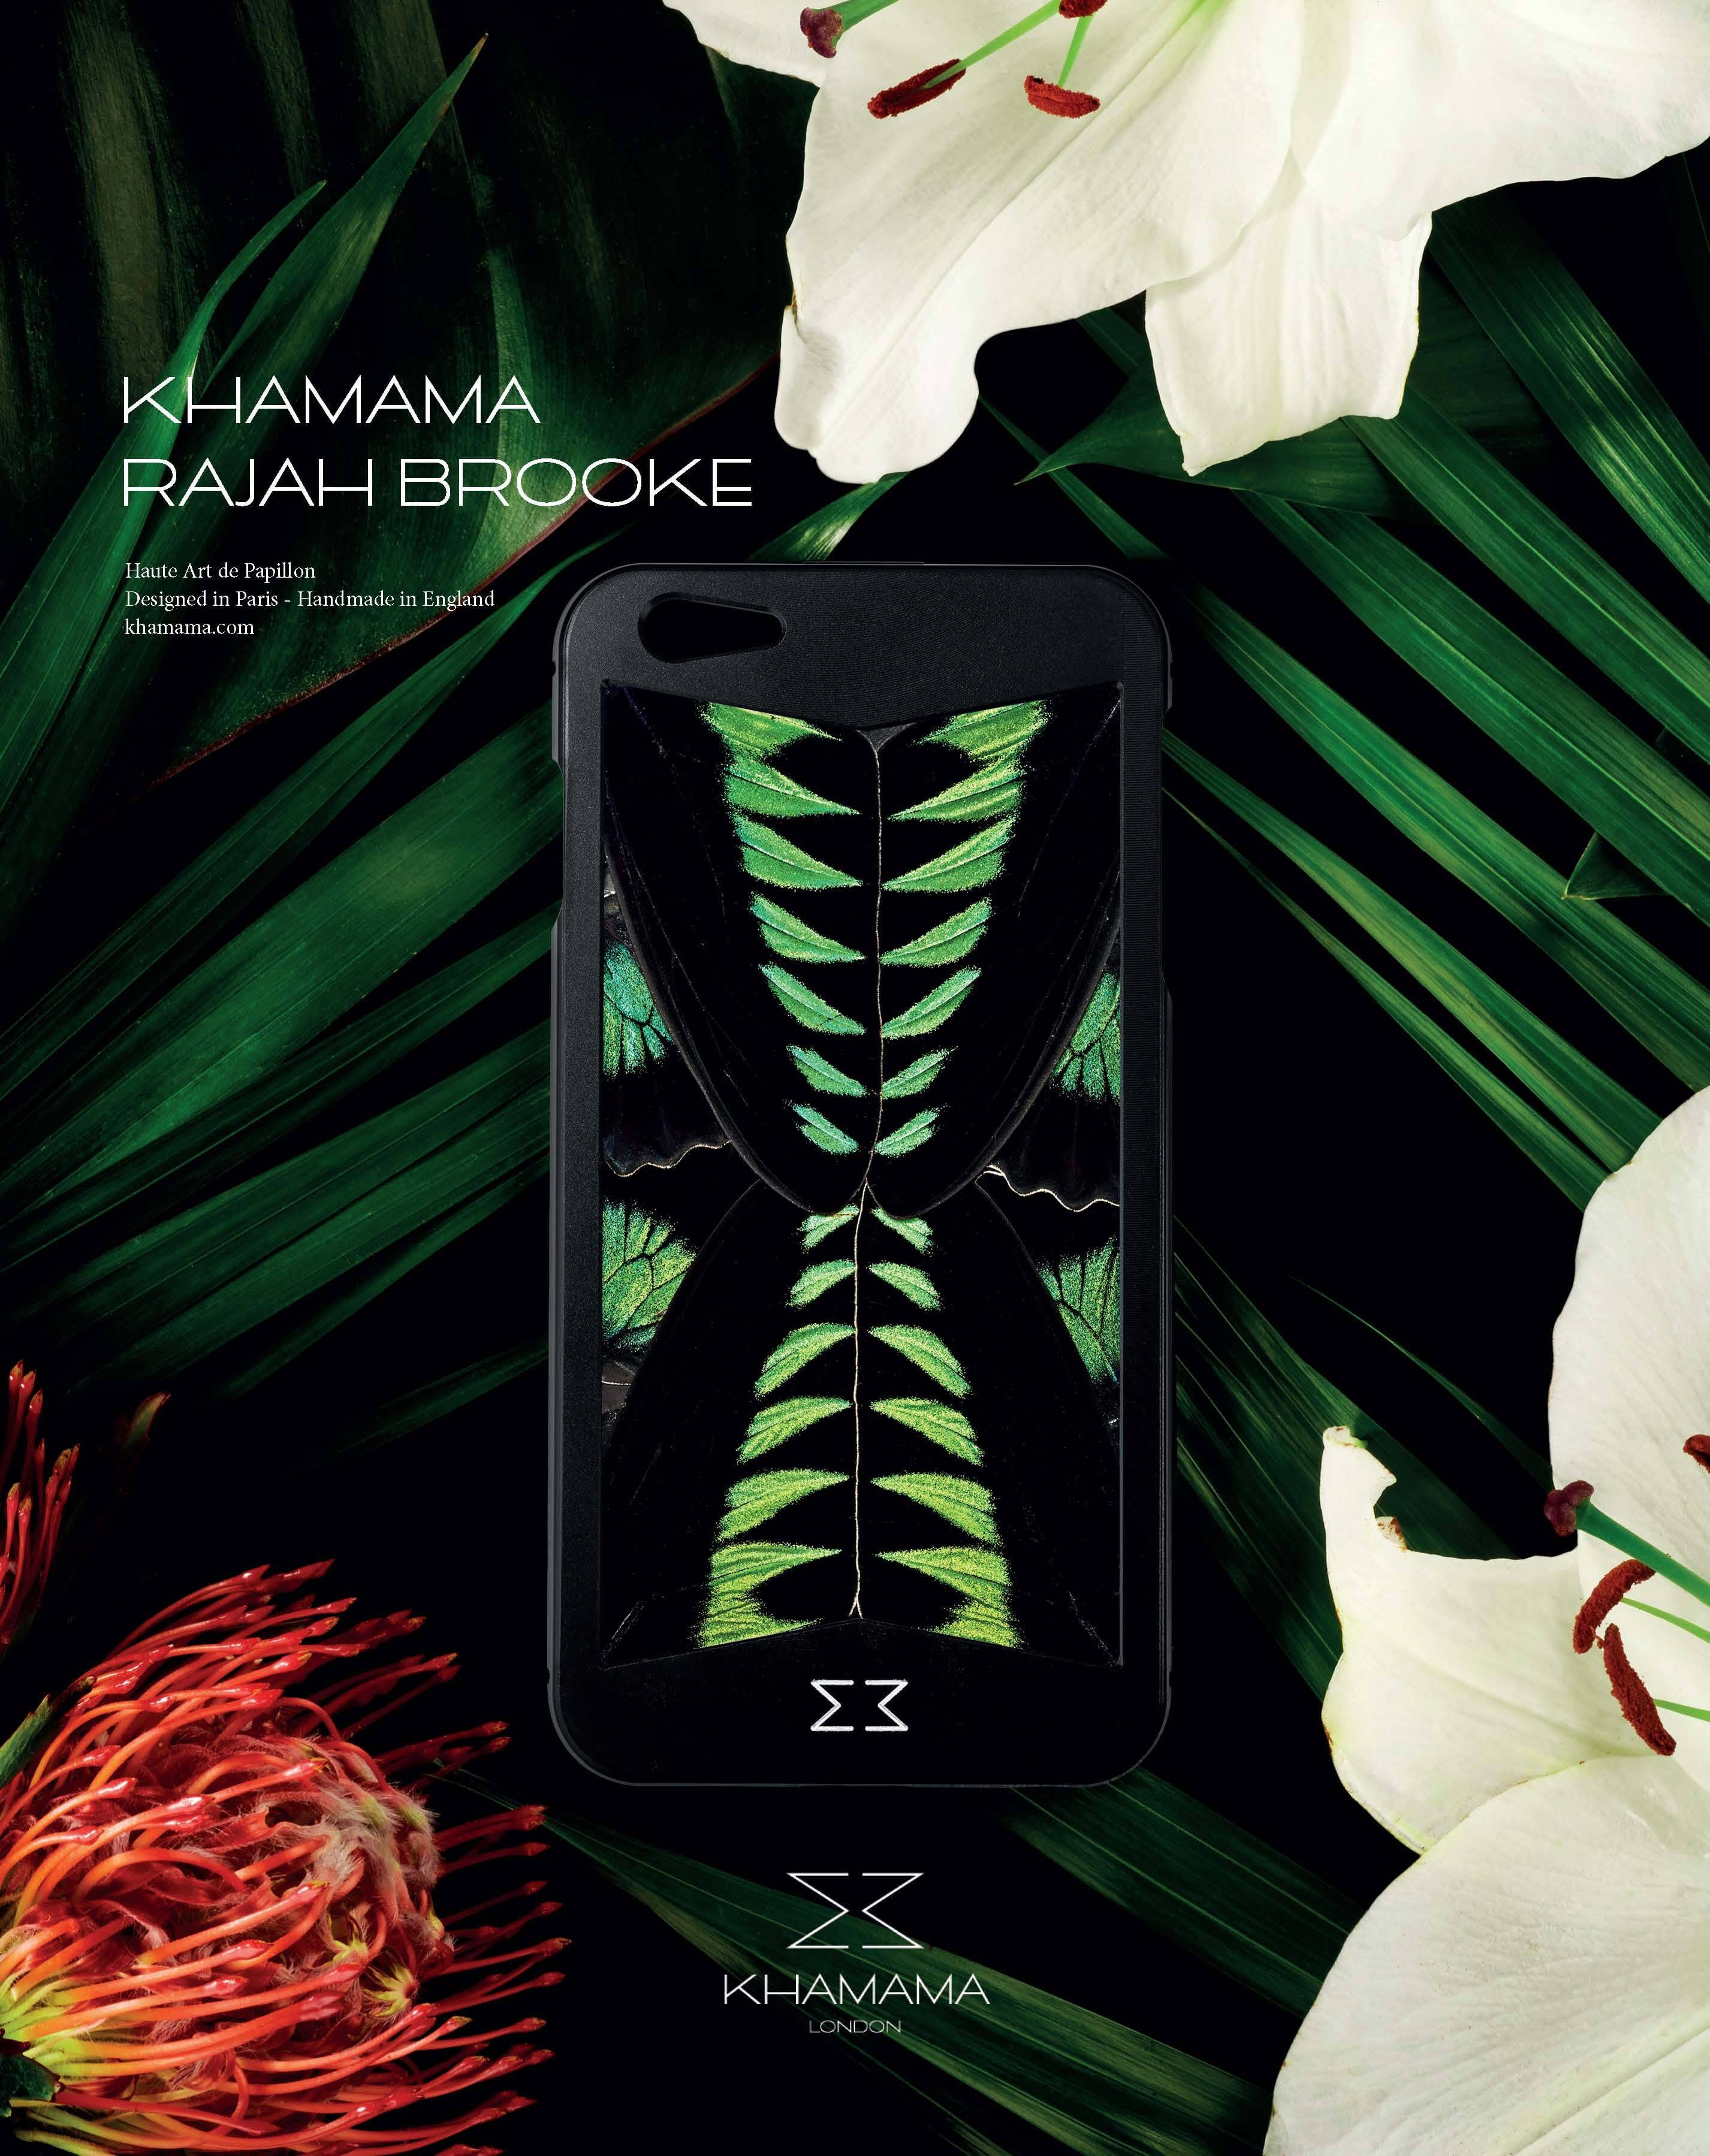 BASIC Magazine summer 2017, KHAMAMA Rajah Brooke iPhone case, press feature